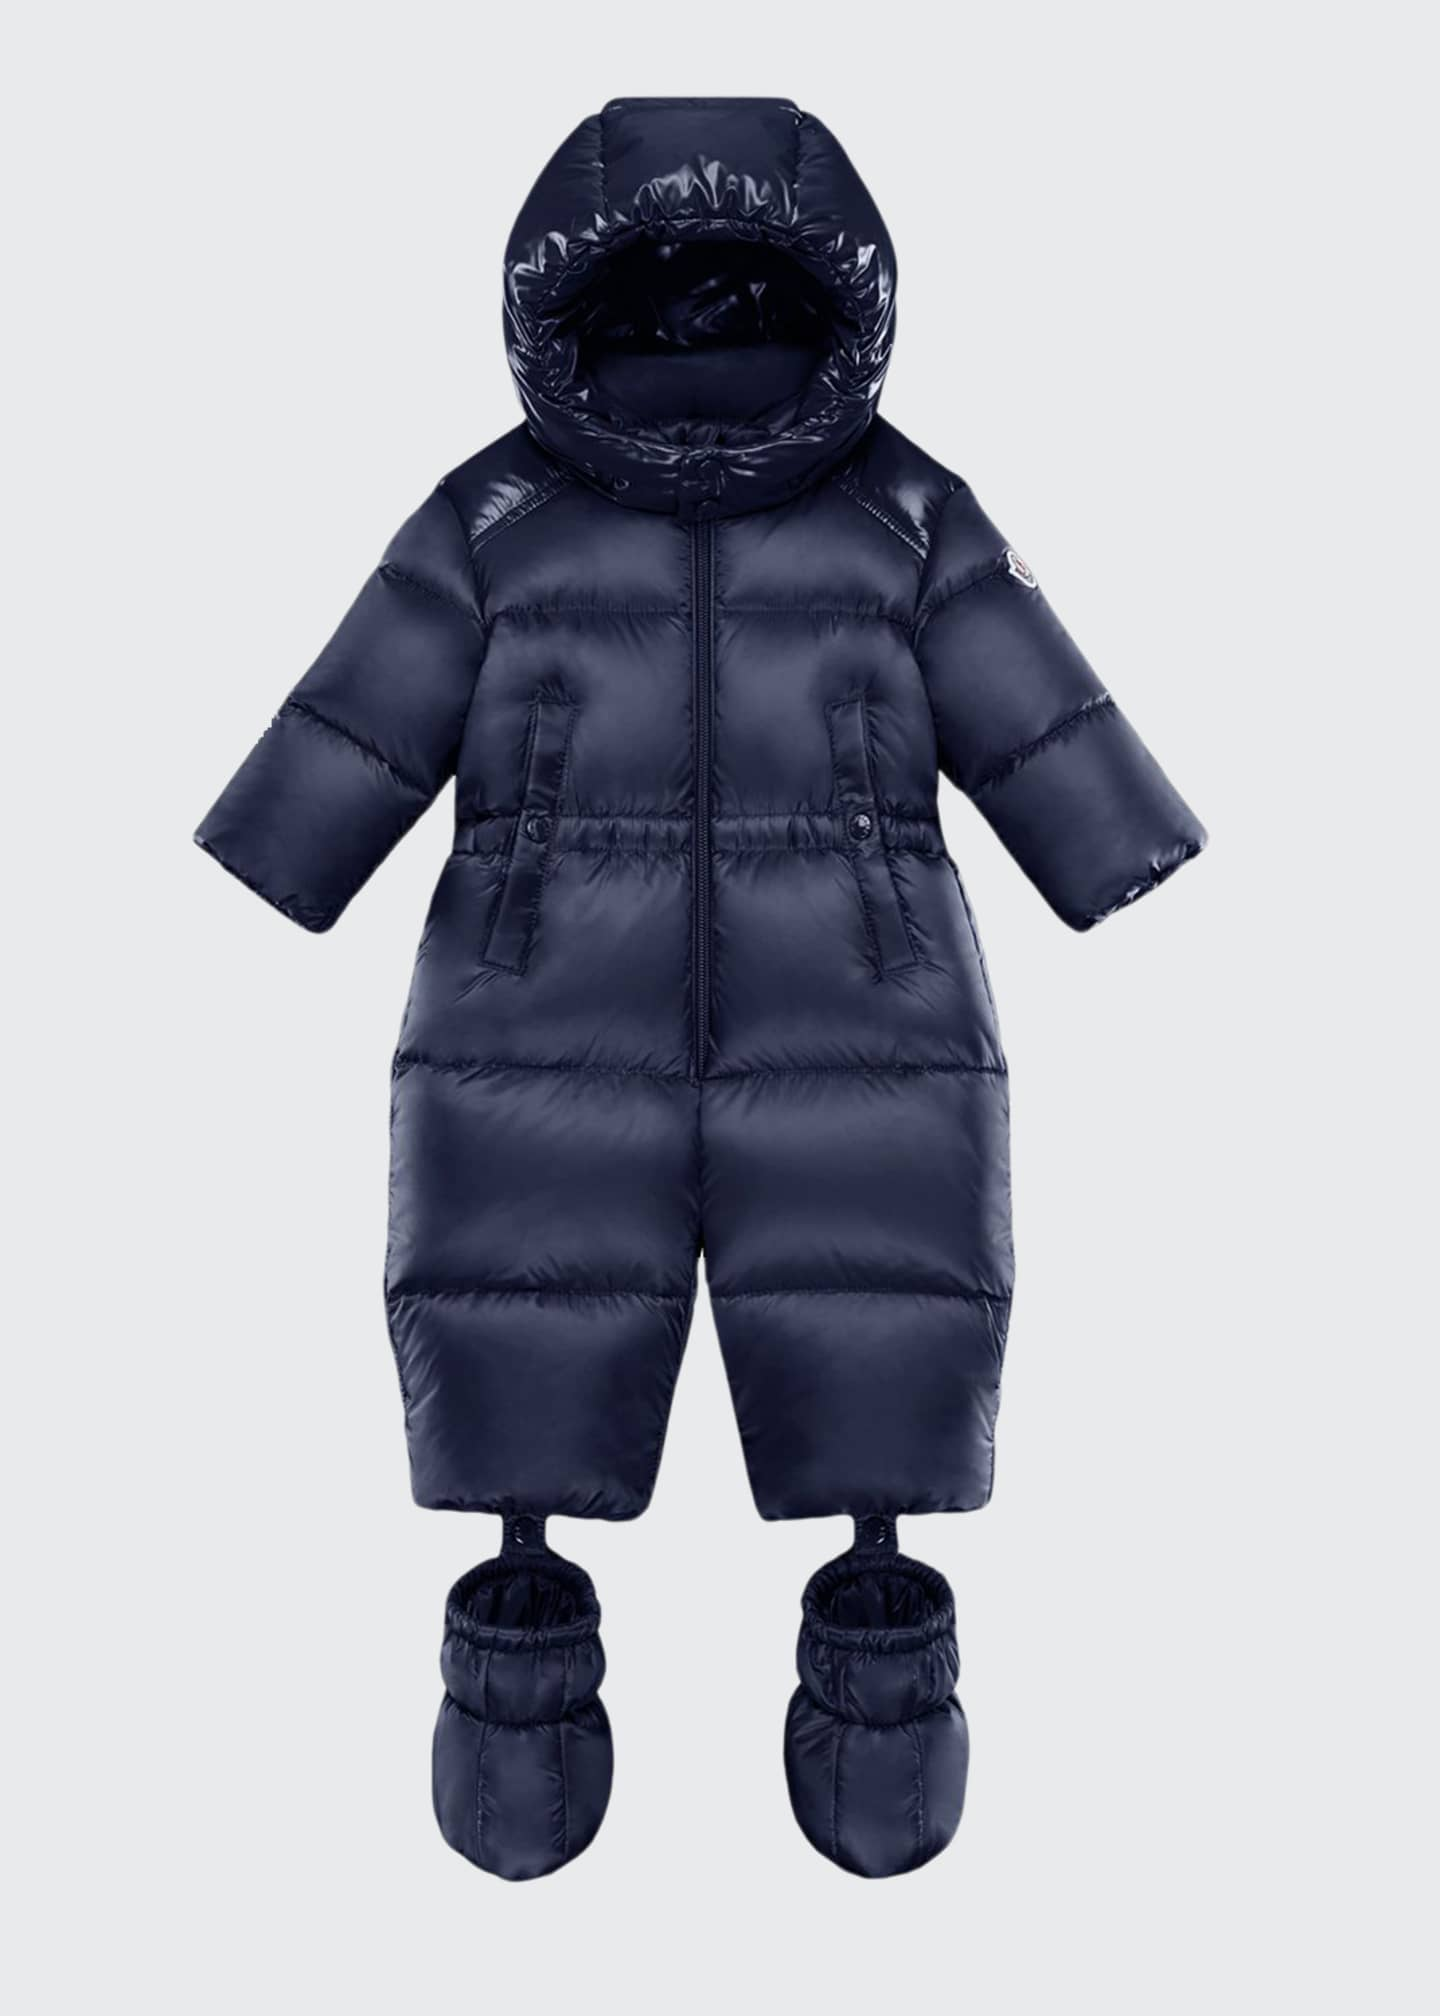 Moncler Pervance Hooded Puffer Snowsuit w/ Removable Booties,